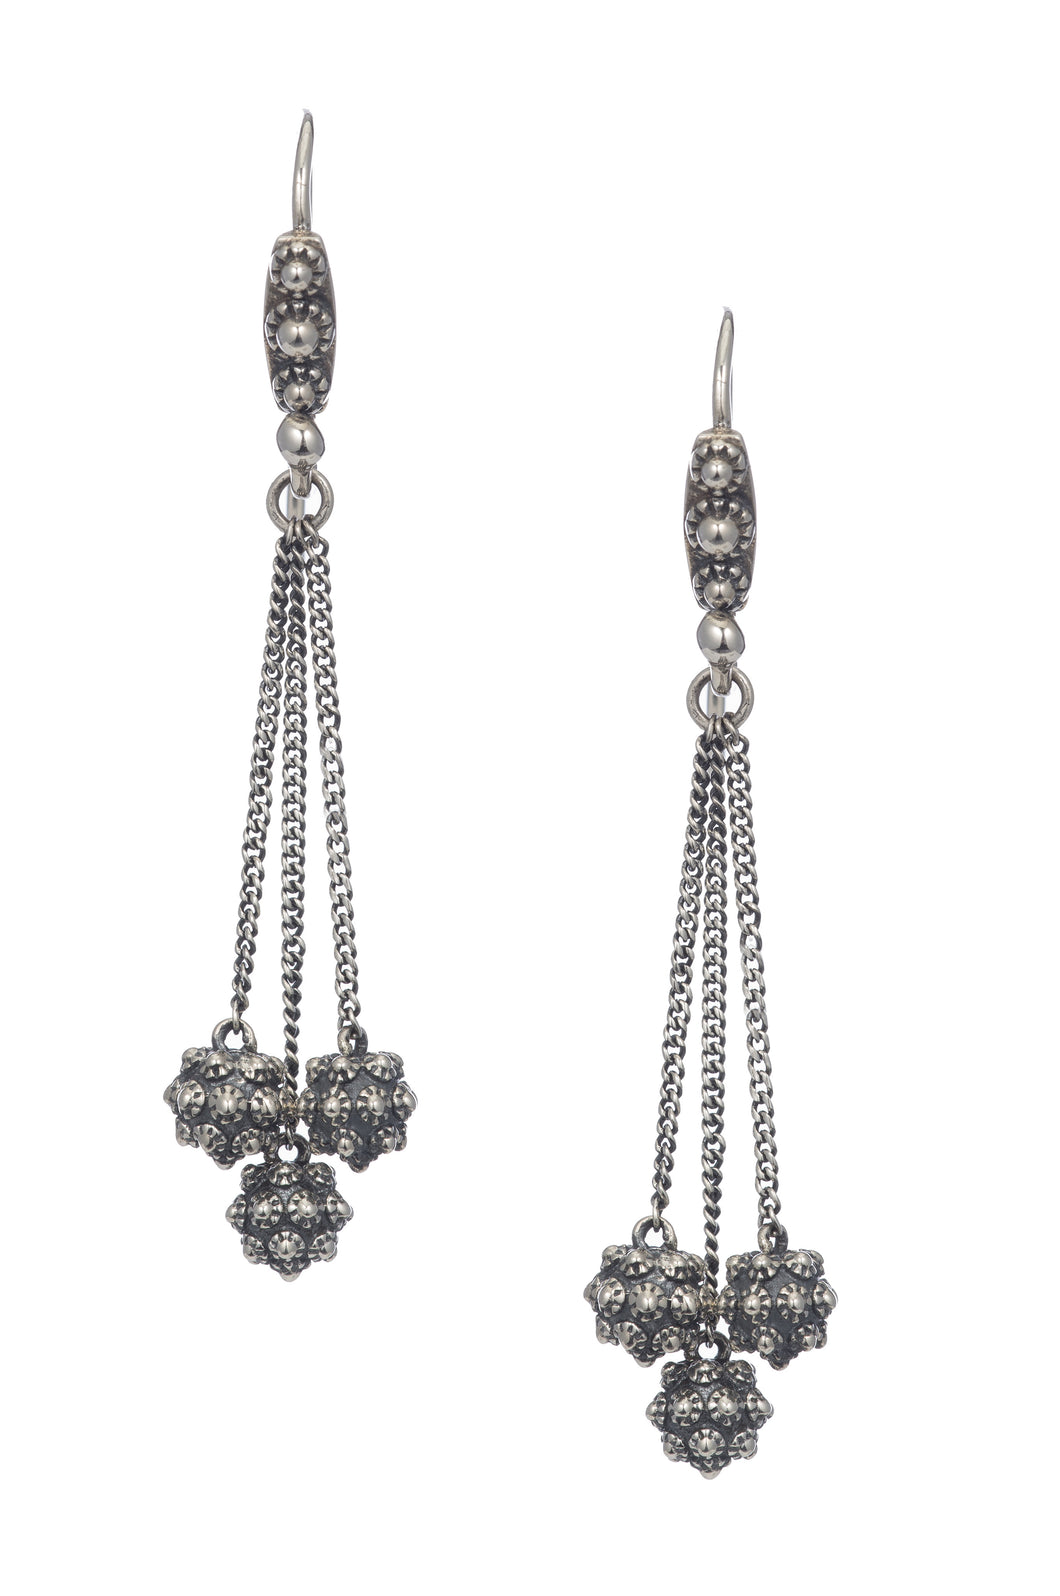 Stupa Earrings - earring - KIR Collection - designer sterling silver jewelry